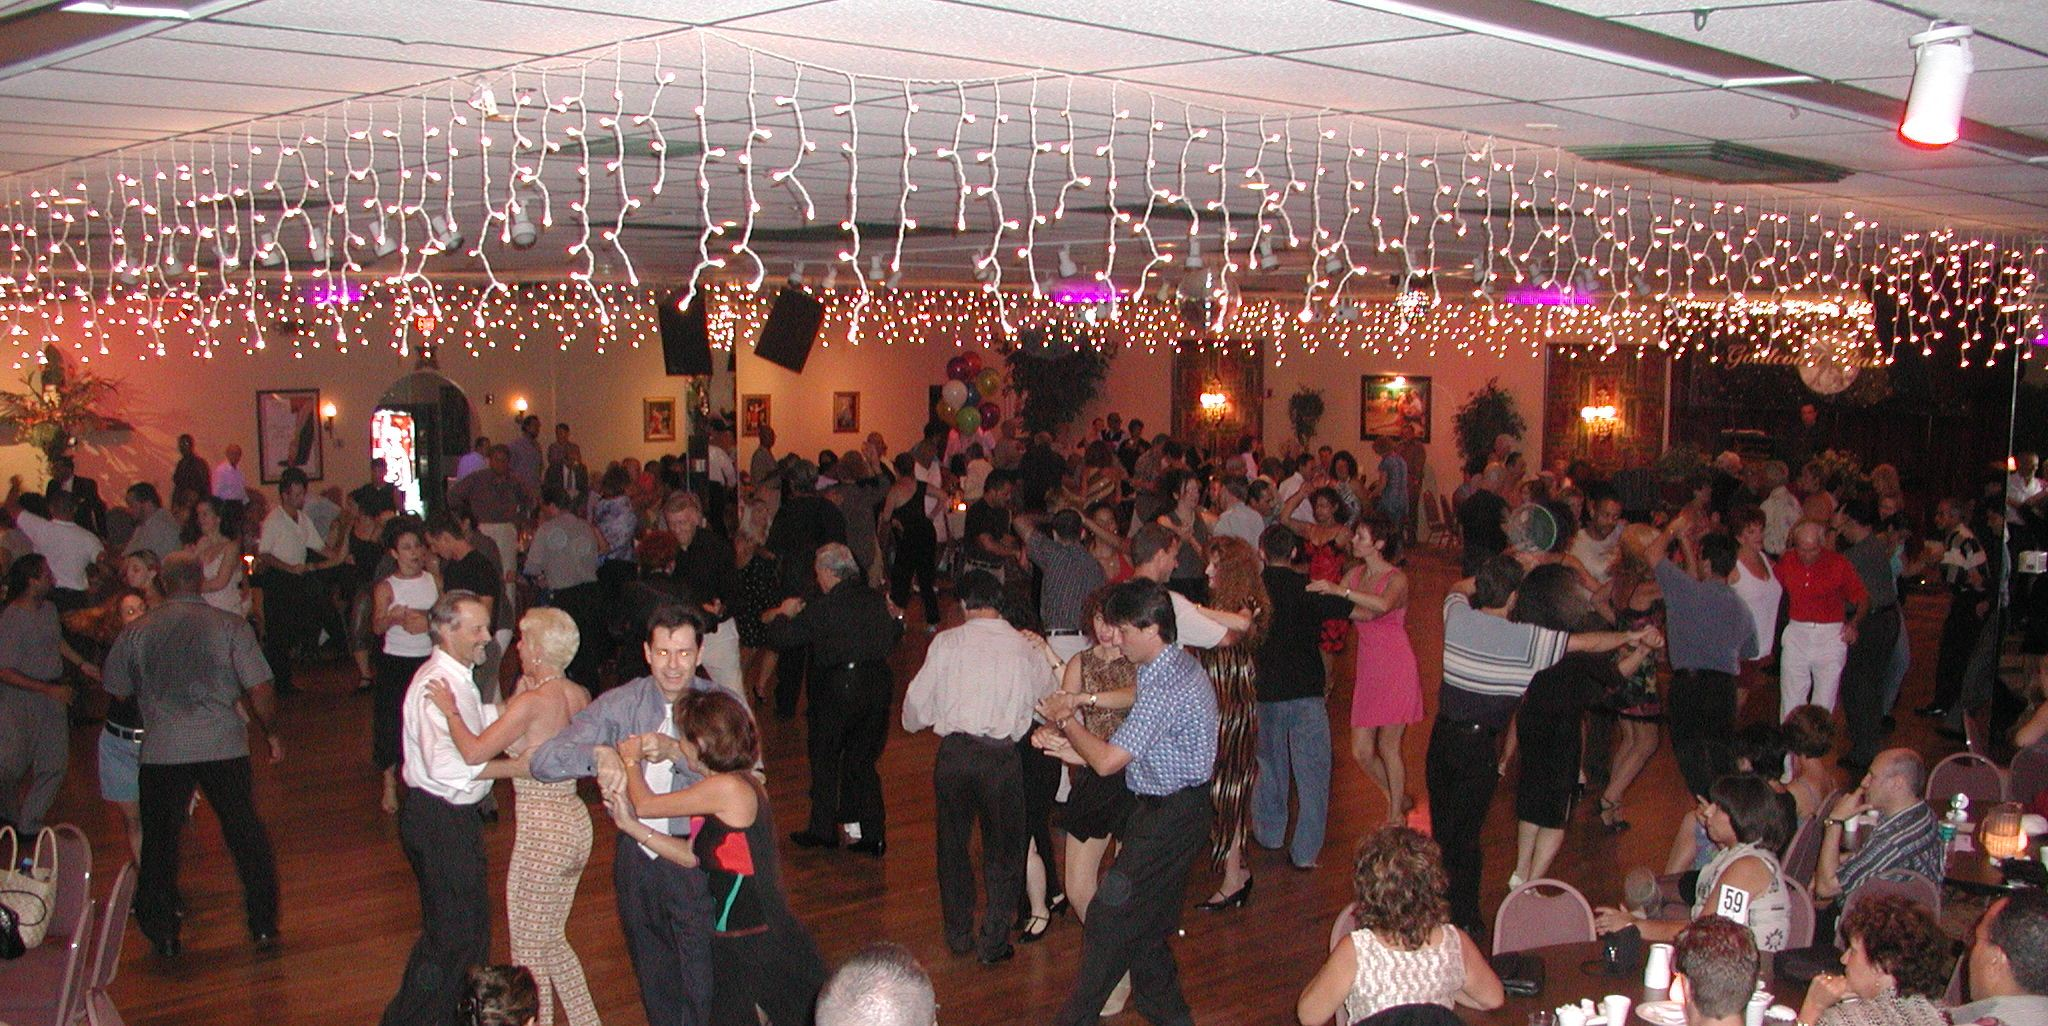 Tuesday Nights at Goldcoast Ballroom – Join The Best Dancers from Everywhere for Ballroom DanceSport Night – including a COMPLIMENTARY DANCE CLASS (usually with U.S. Professional Champion Liene Di Lorenzo!!!)